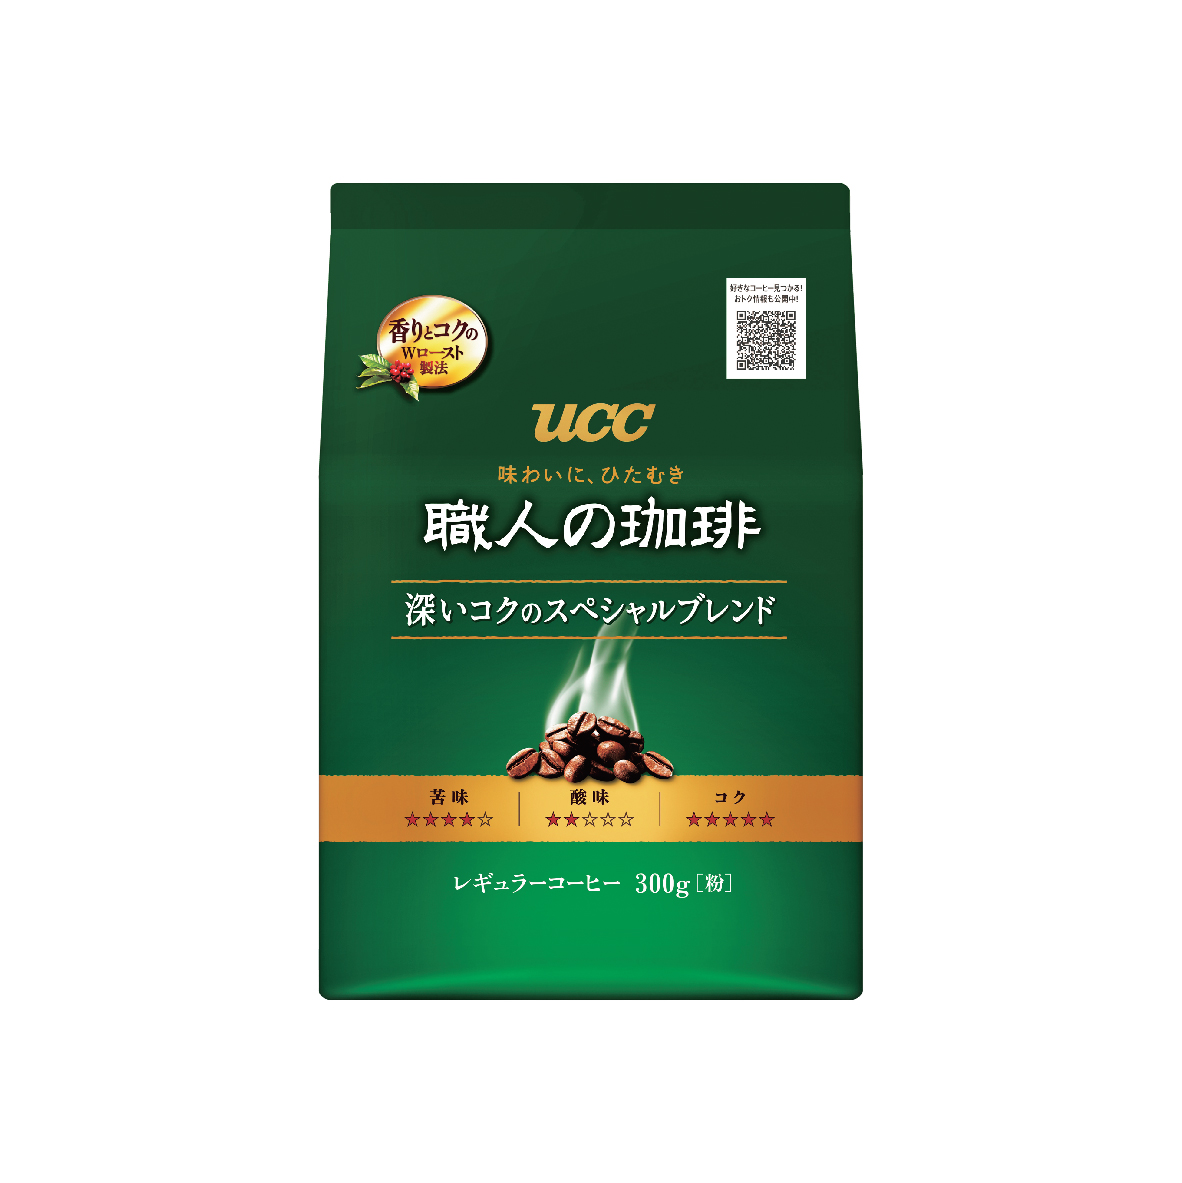 UCC Craftsman's Coffee Rich Roasted Coffee